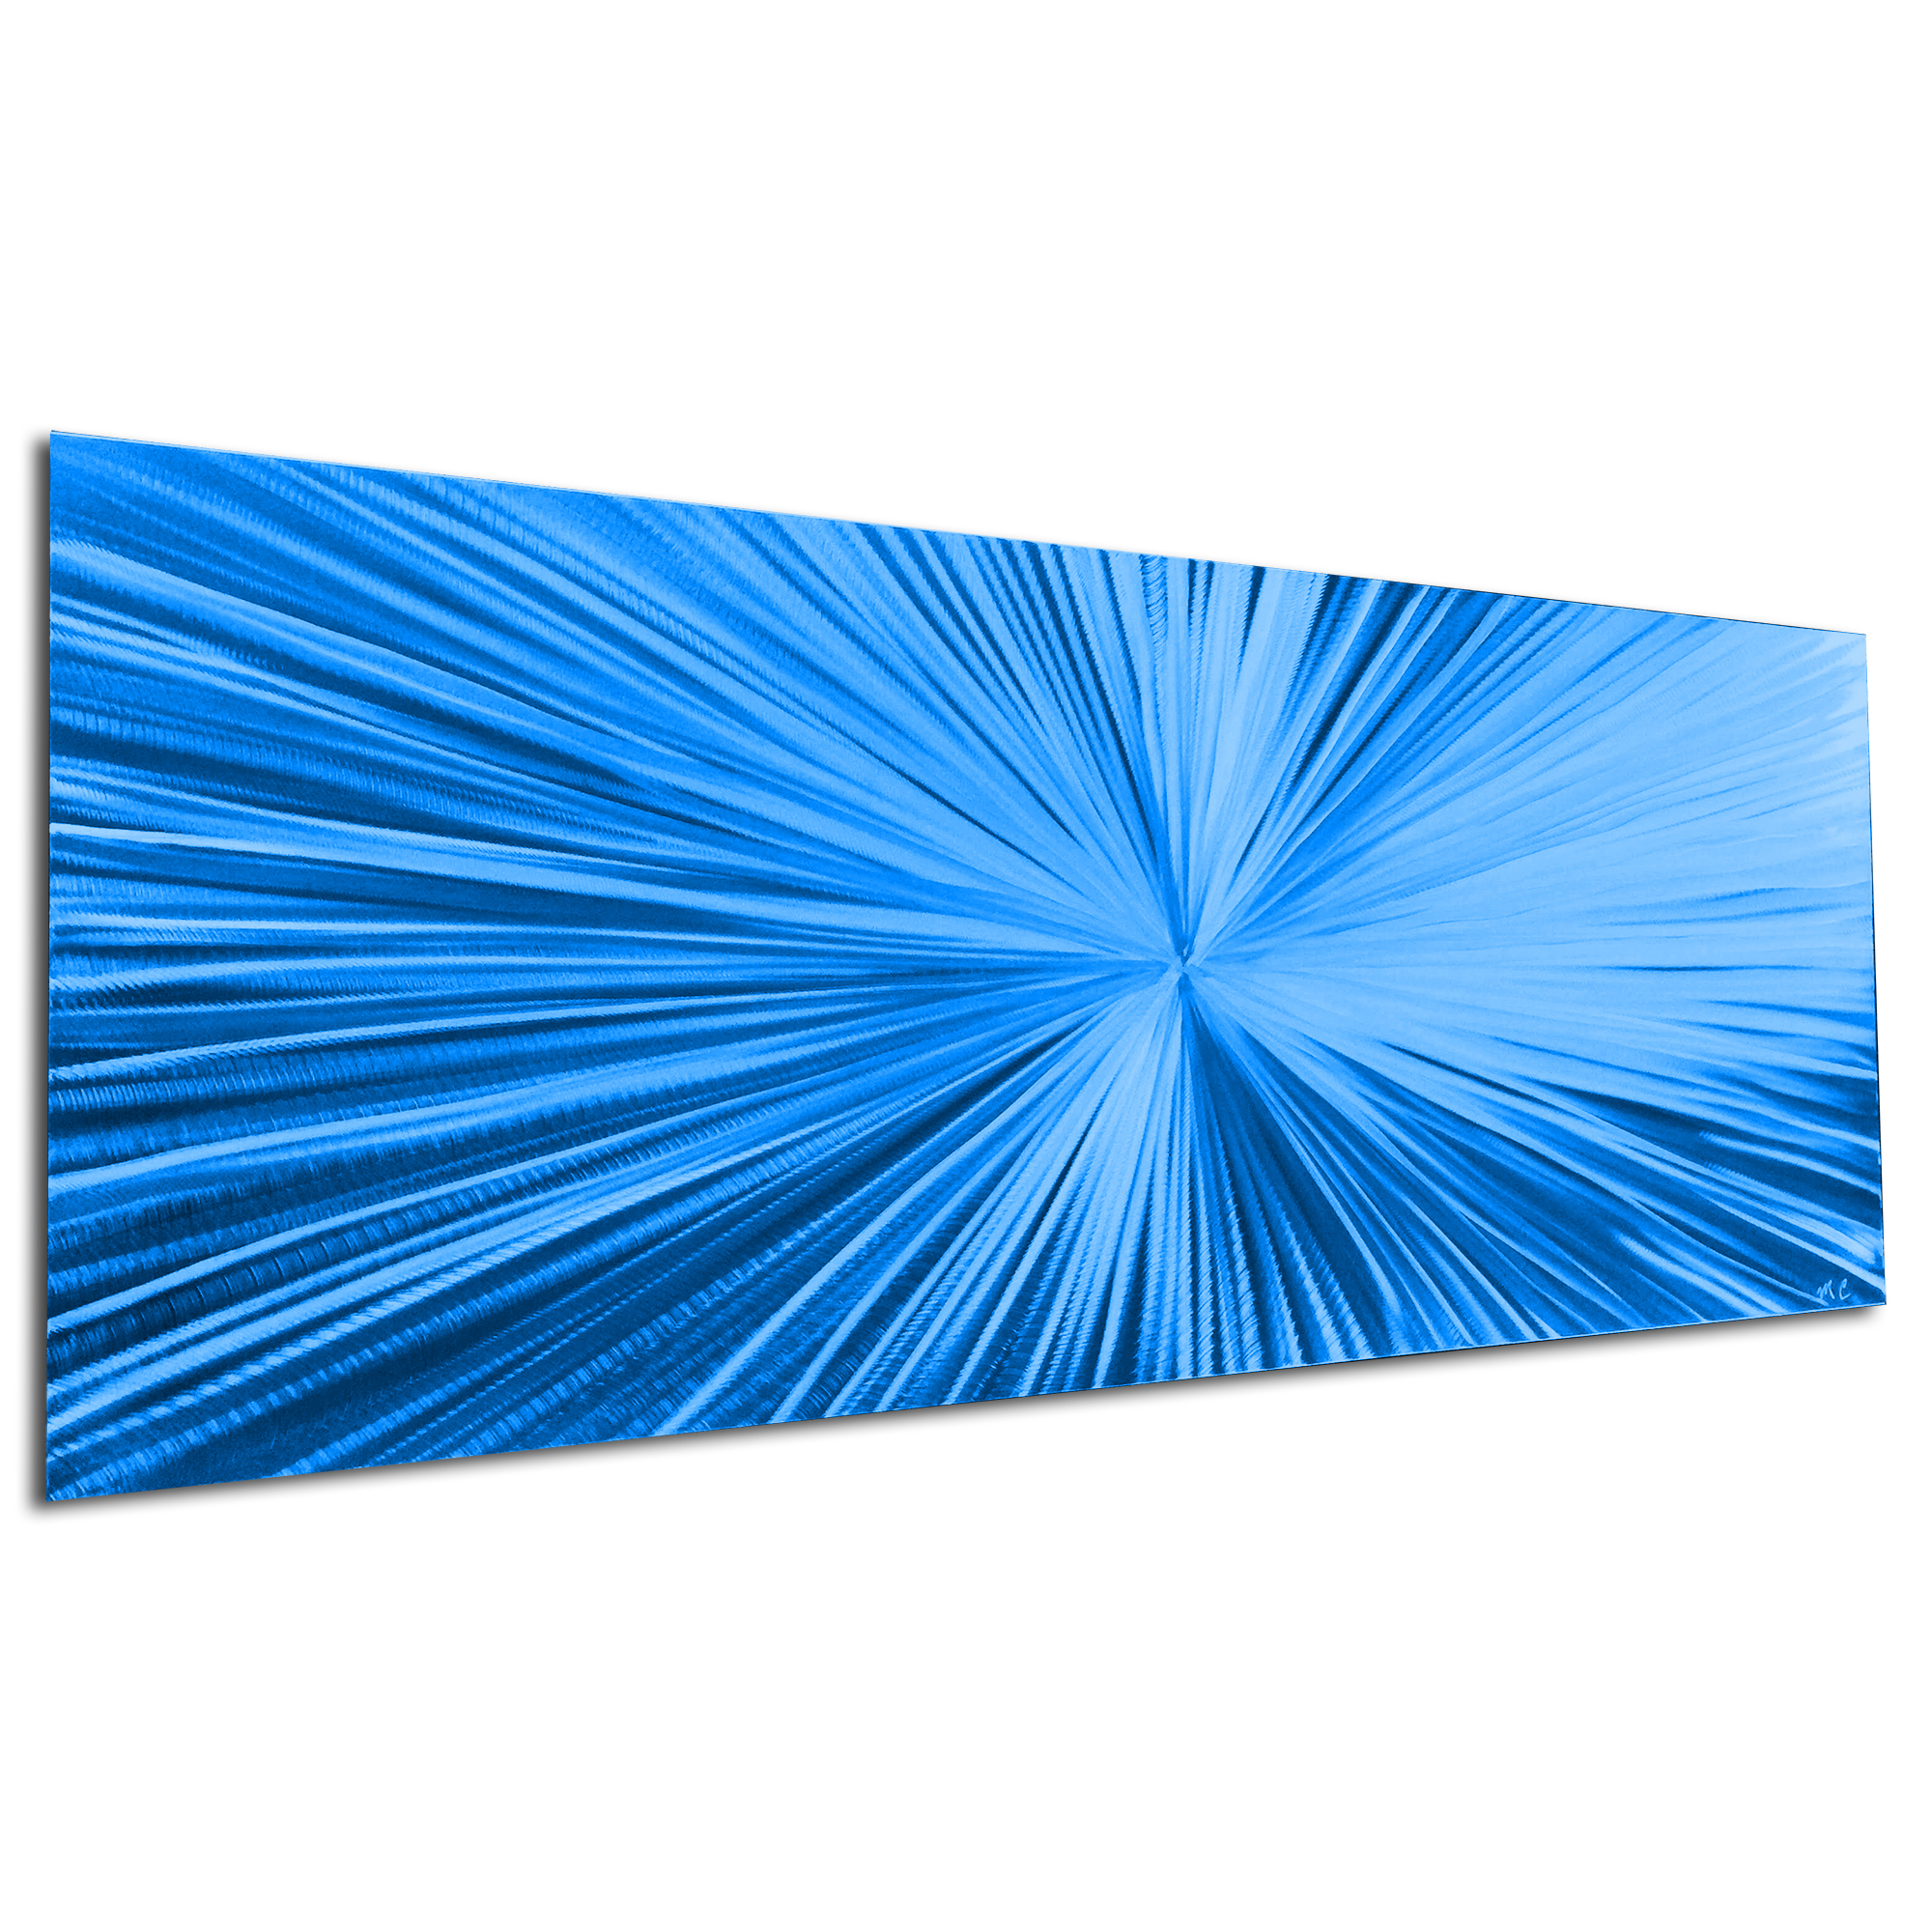 Starburst Blue by Helena Martin - Original Abstract Art on Ground and Painted Metal - Image 3